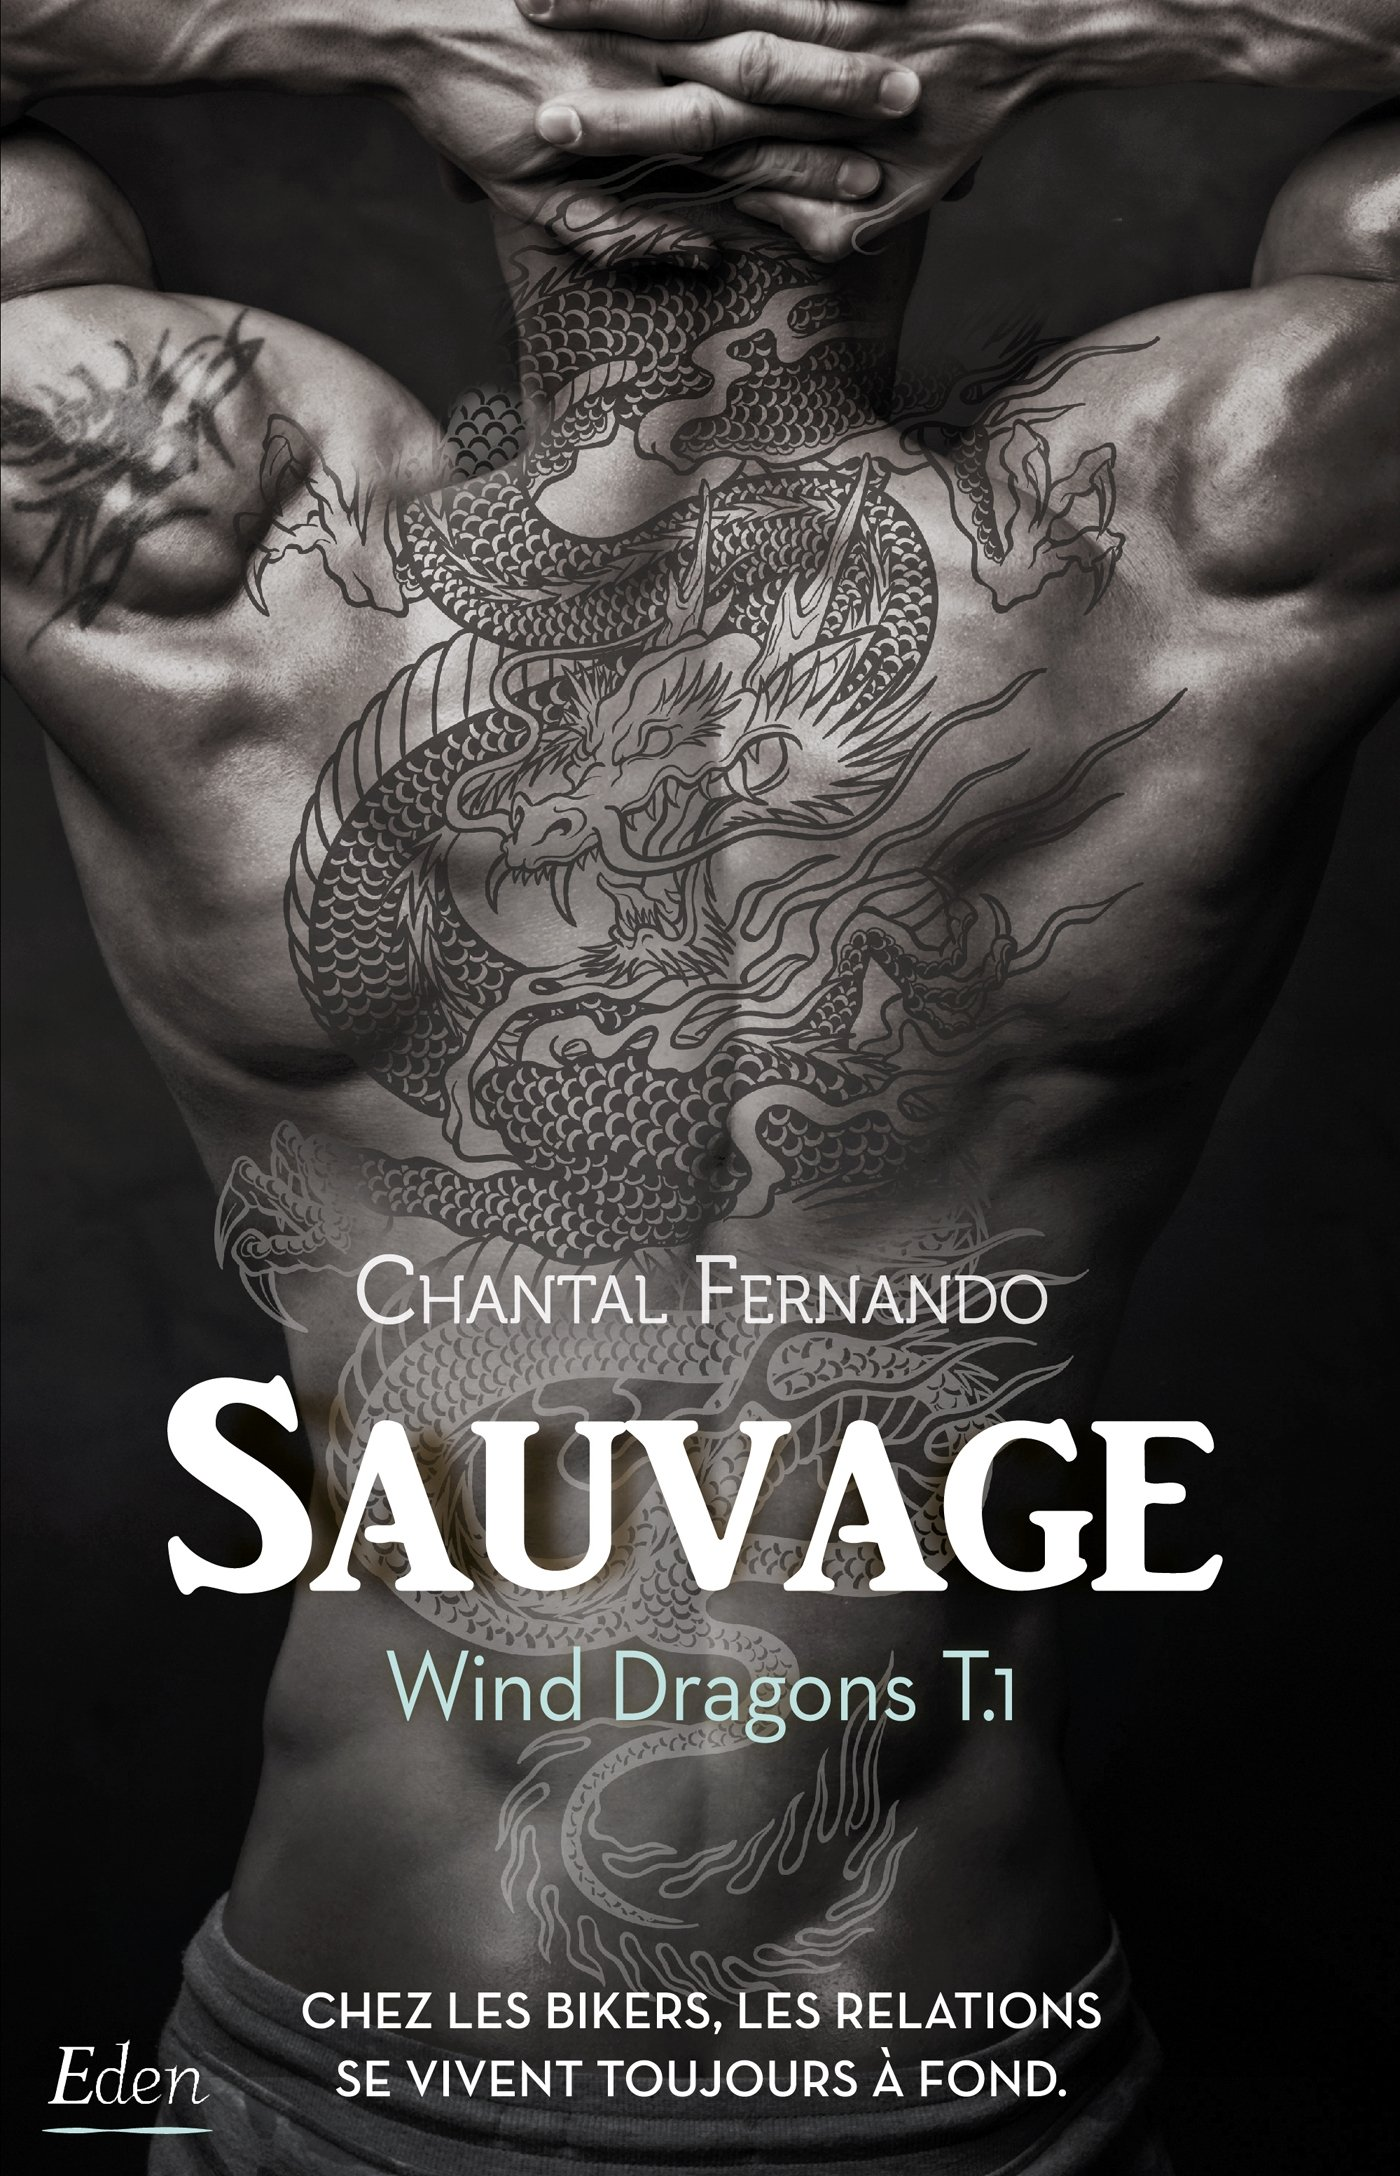 Wind dragons (1) : Sauvage